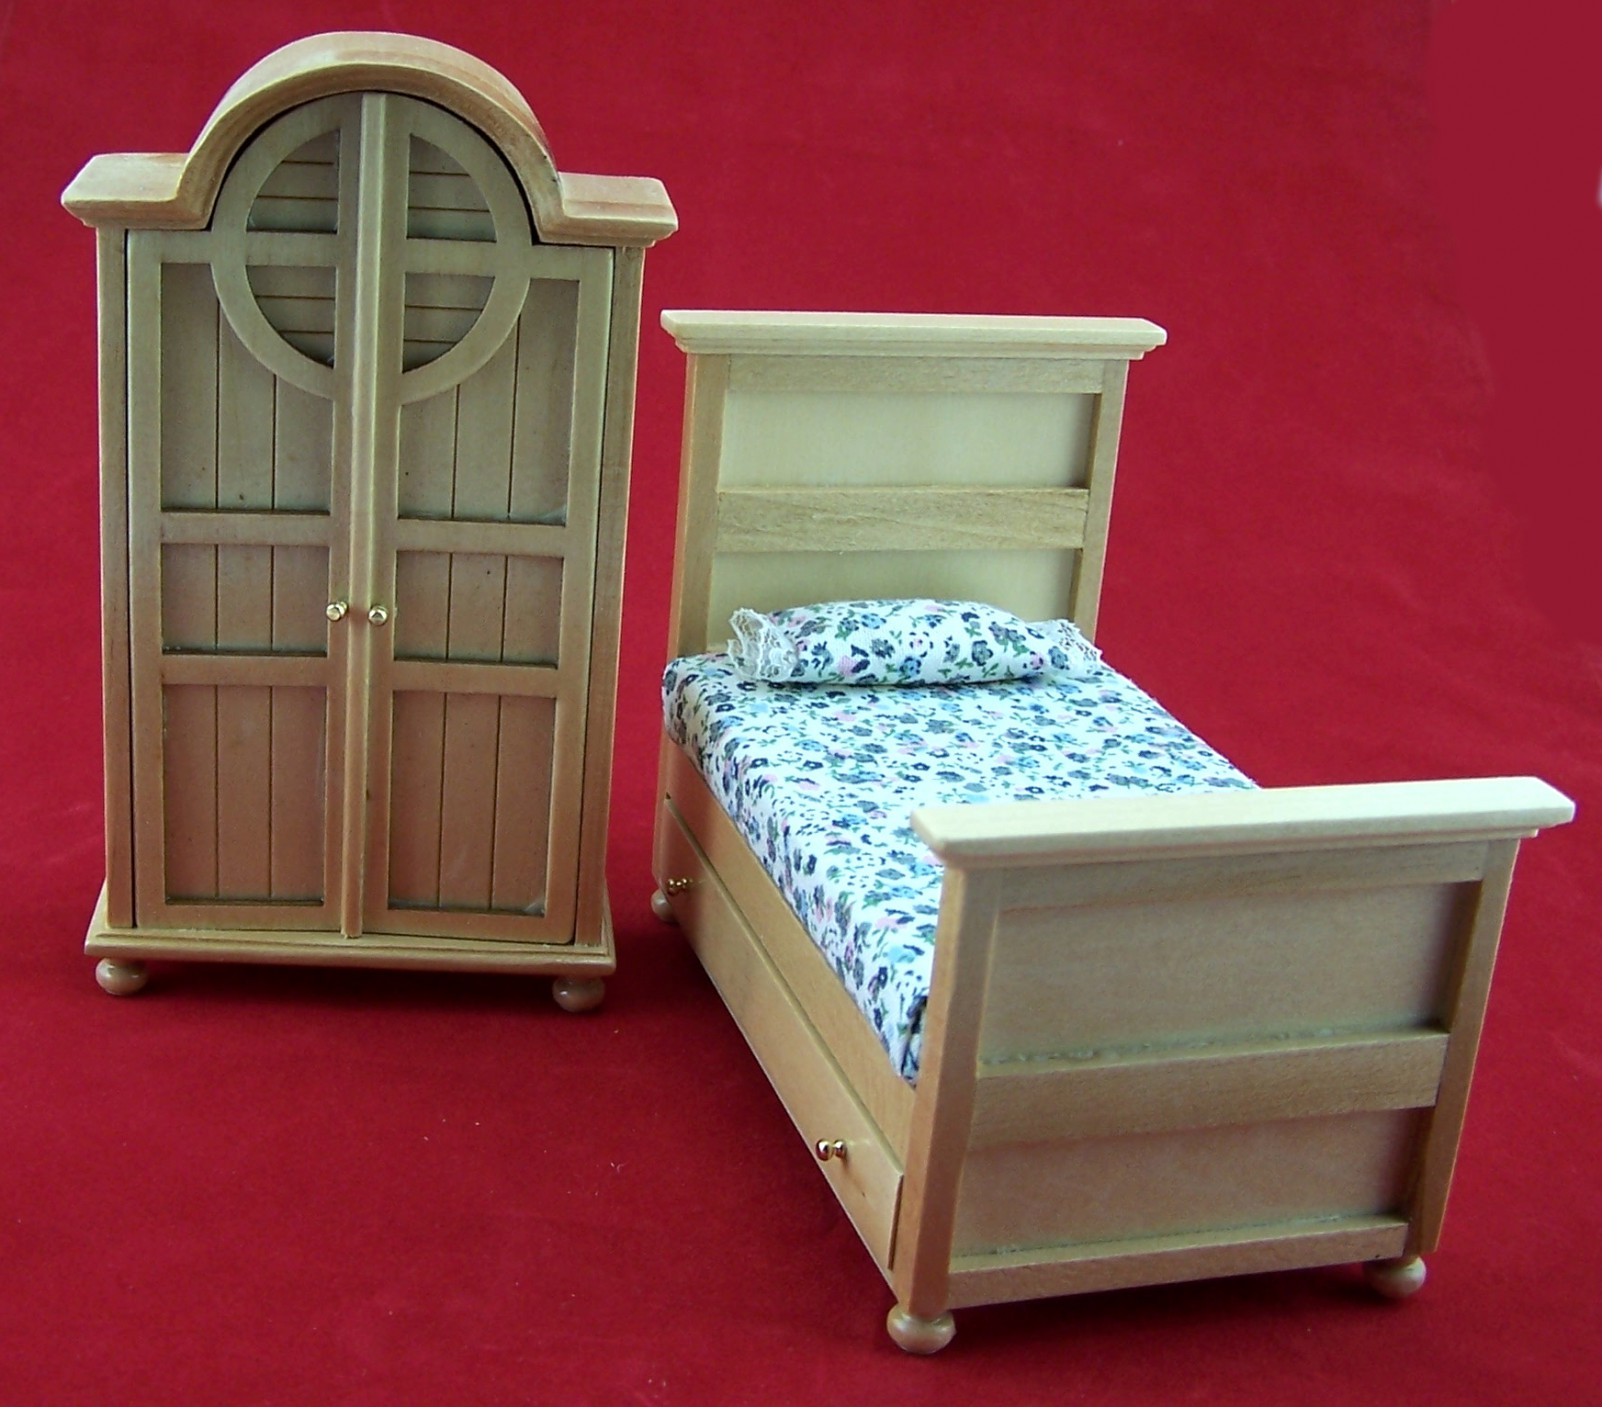 miniatur schrank und bett f r kinderzimmer aus holz. Black Bedroom Furniture Sets. Home Design Ideas